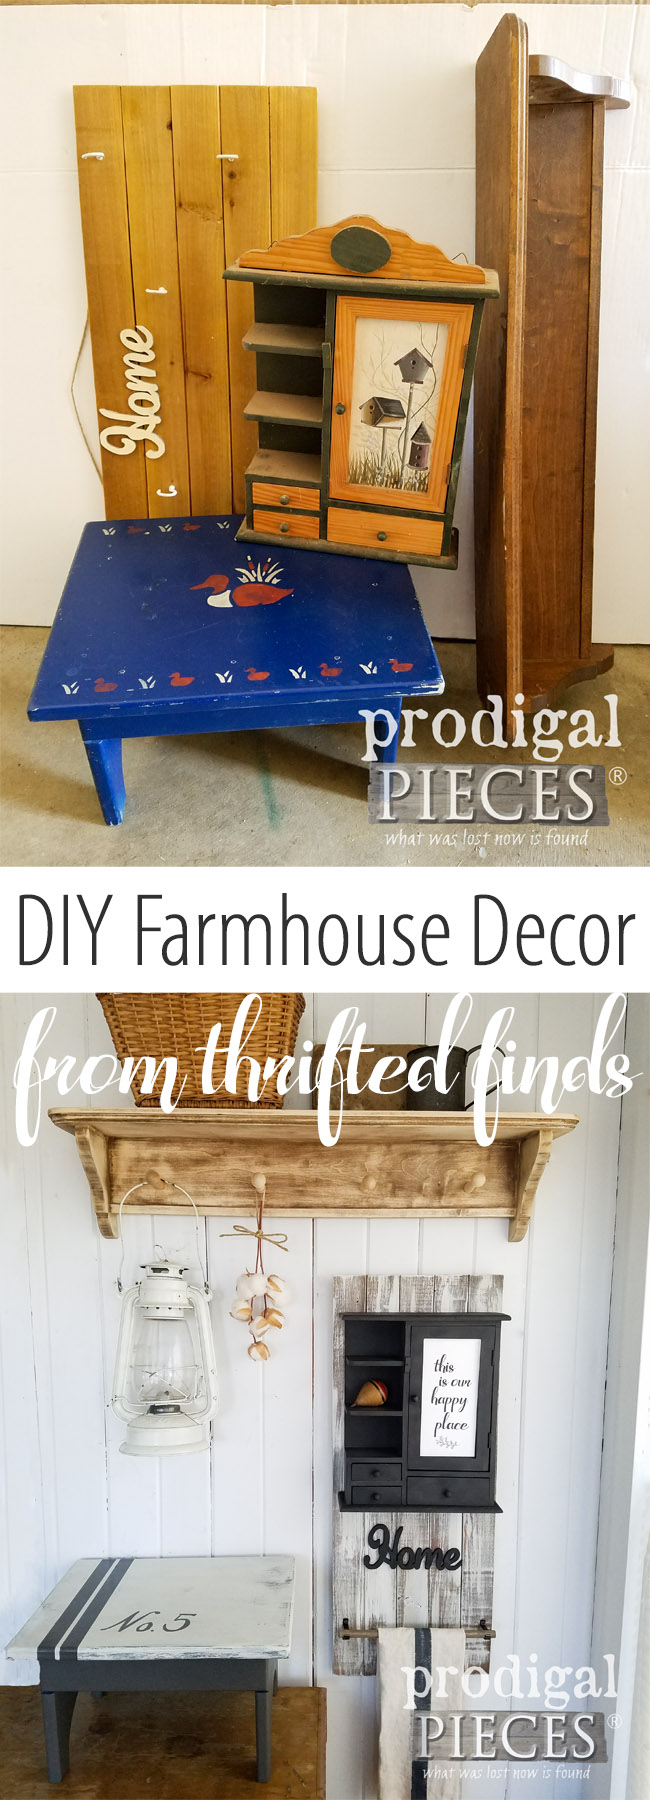 Love farmhouse style, but have no budget? No worries! Head to the thrift store and get your DIY on to create the look you're after. Details at Prodigal Pieces | prodigalpieces.com